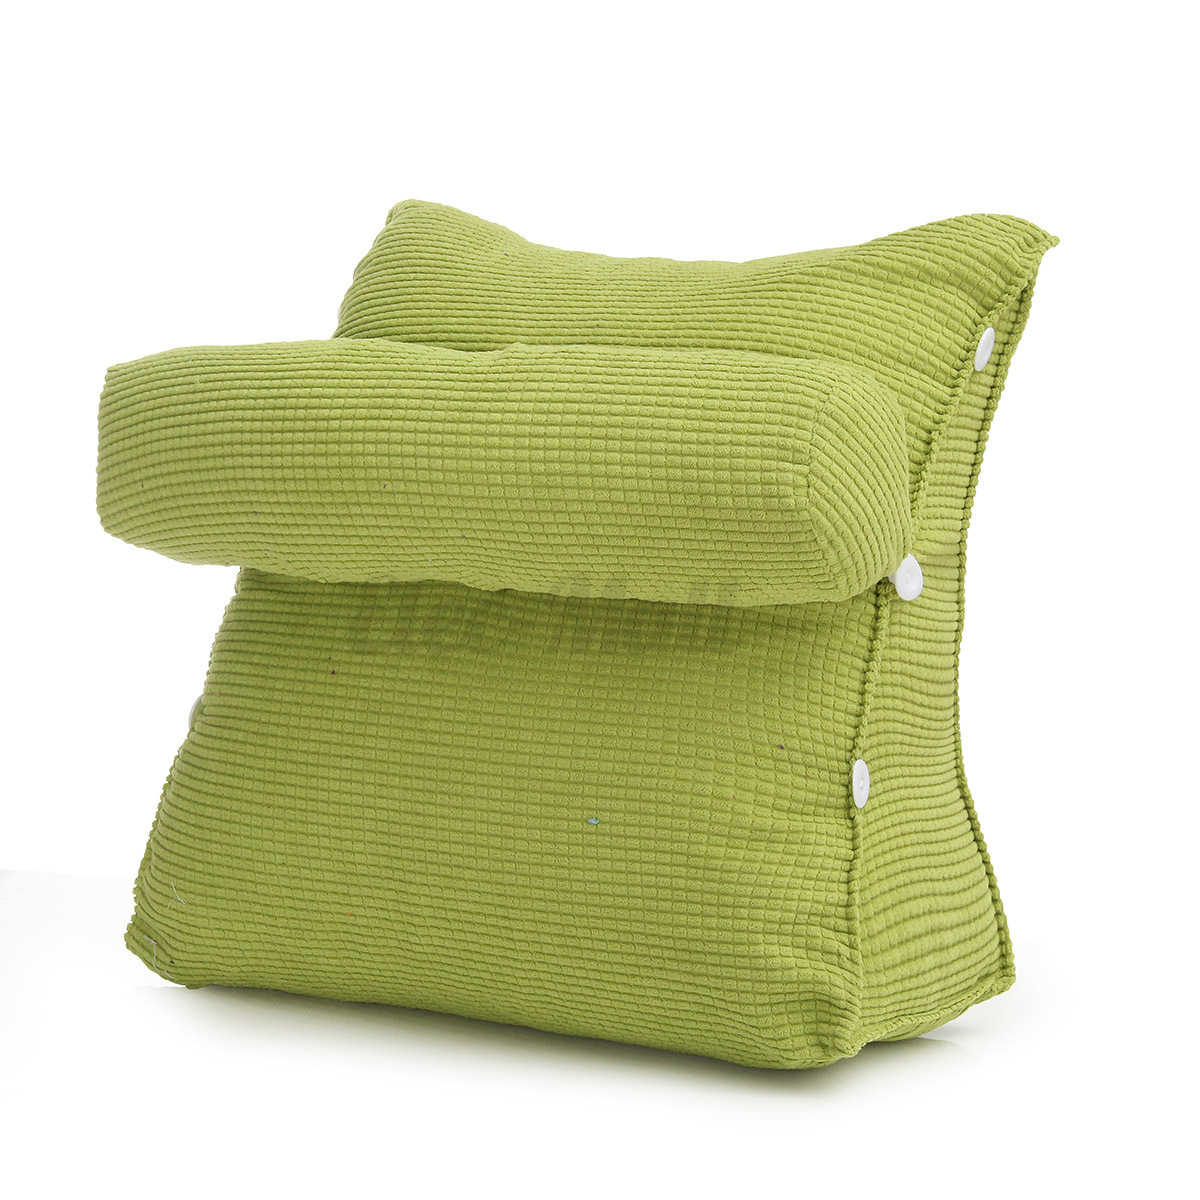 Bed Chair Pillow Sofa Bed Office Chair Cushion Adjustable Neck Support Back